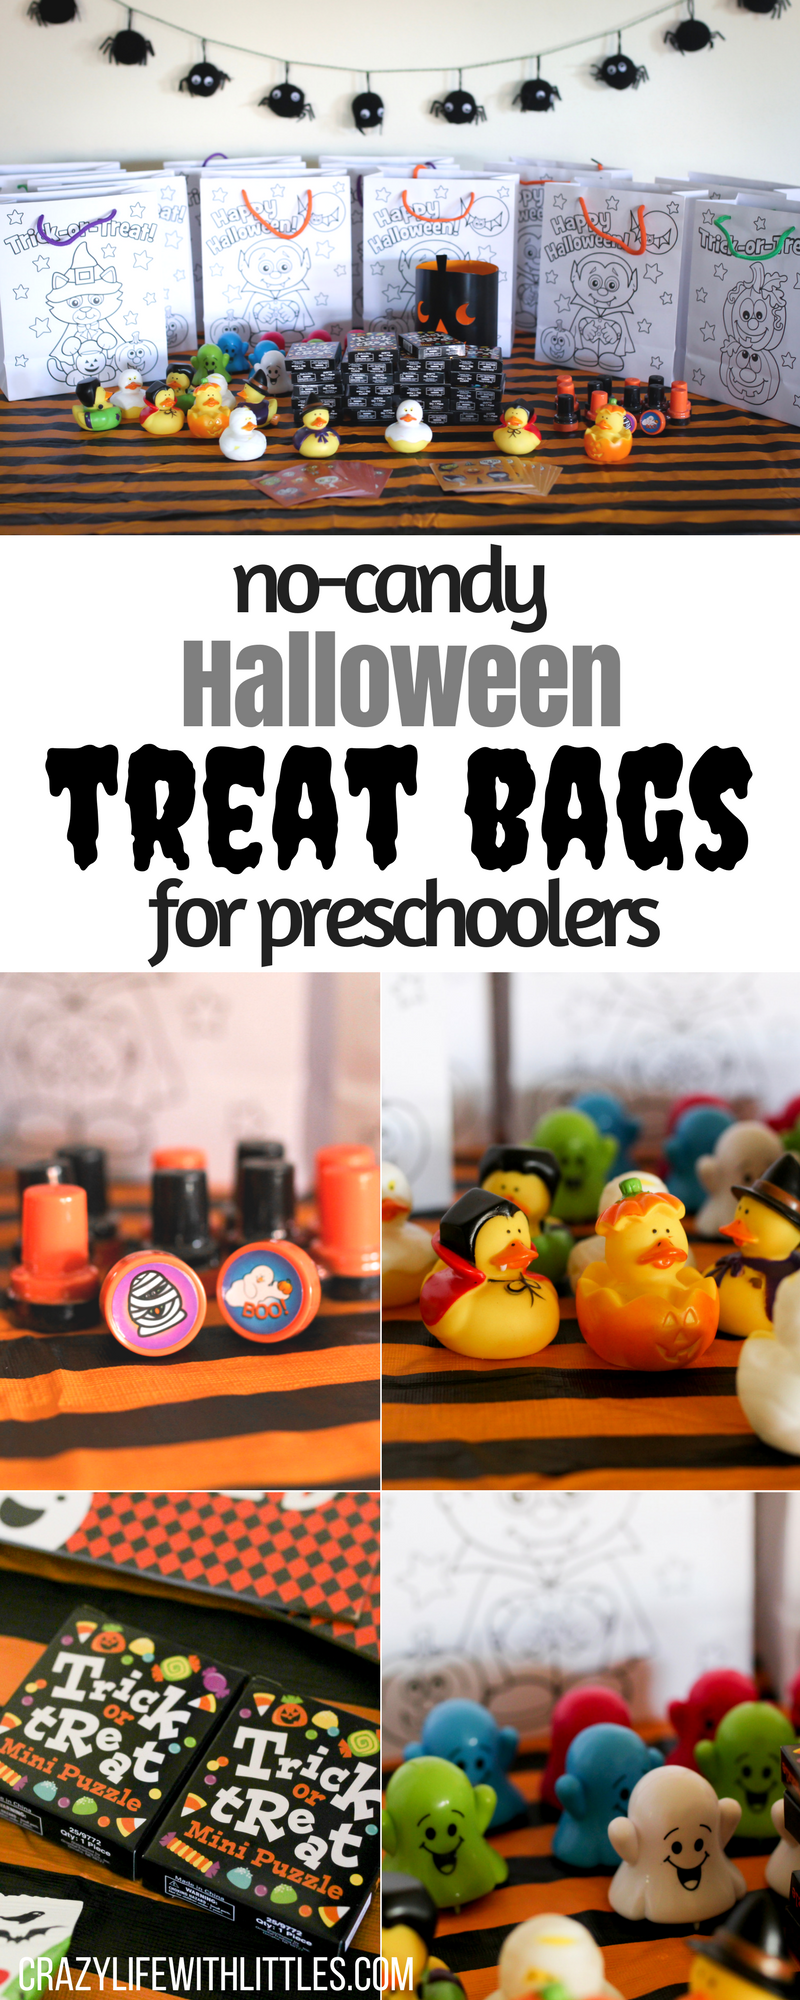 no-candy halloween treat bags for preschoolers | halloween costumes